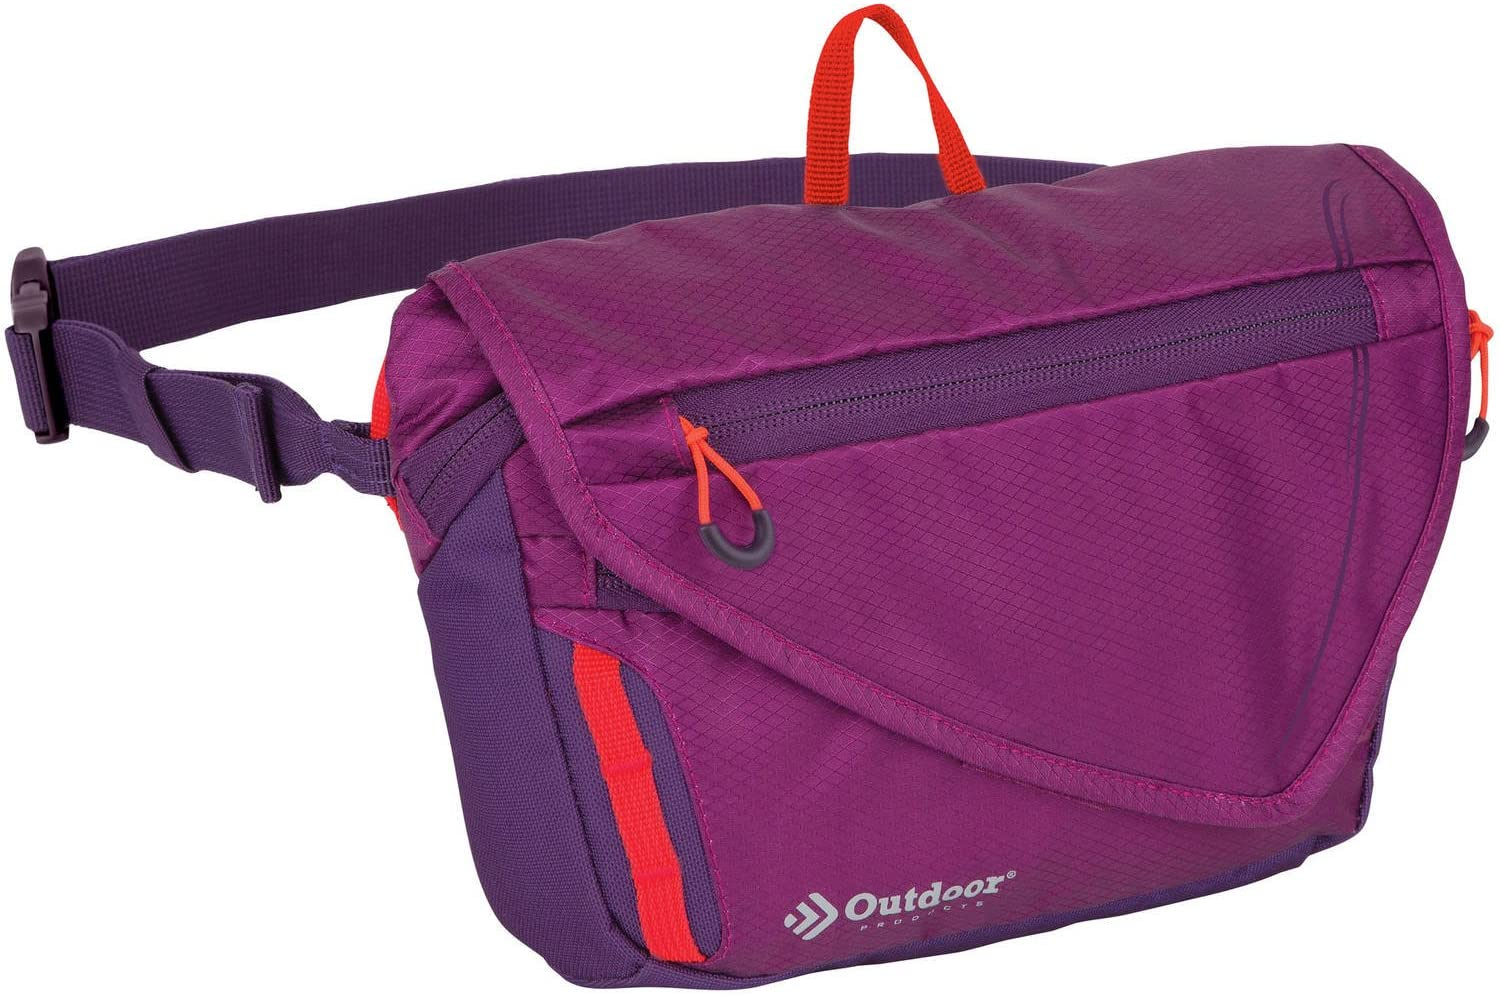 Outdoor Products Marilyn Waistpack - Blackberry Cordial